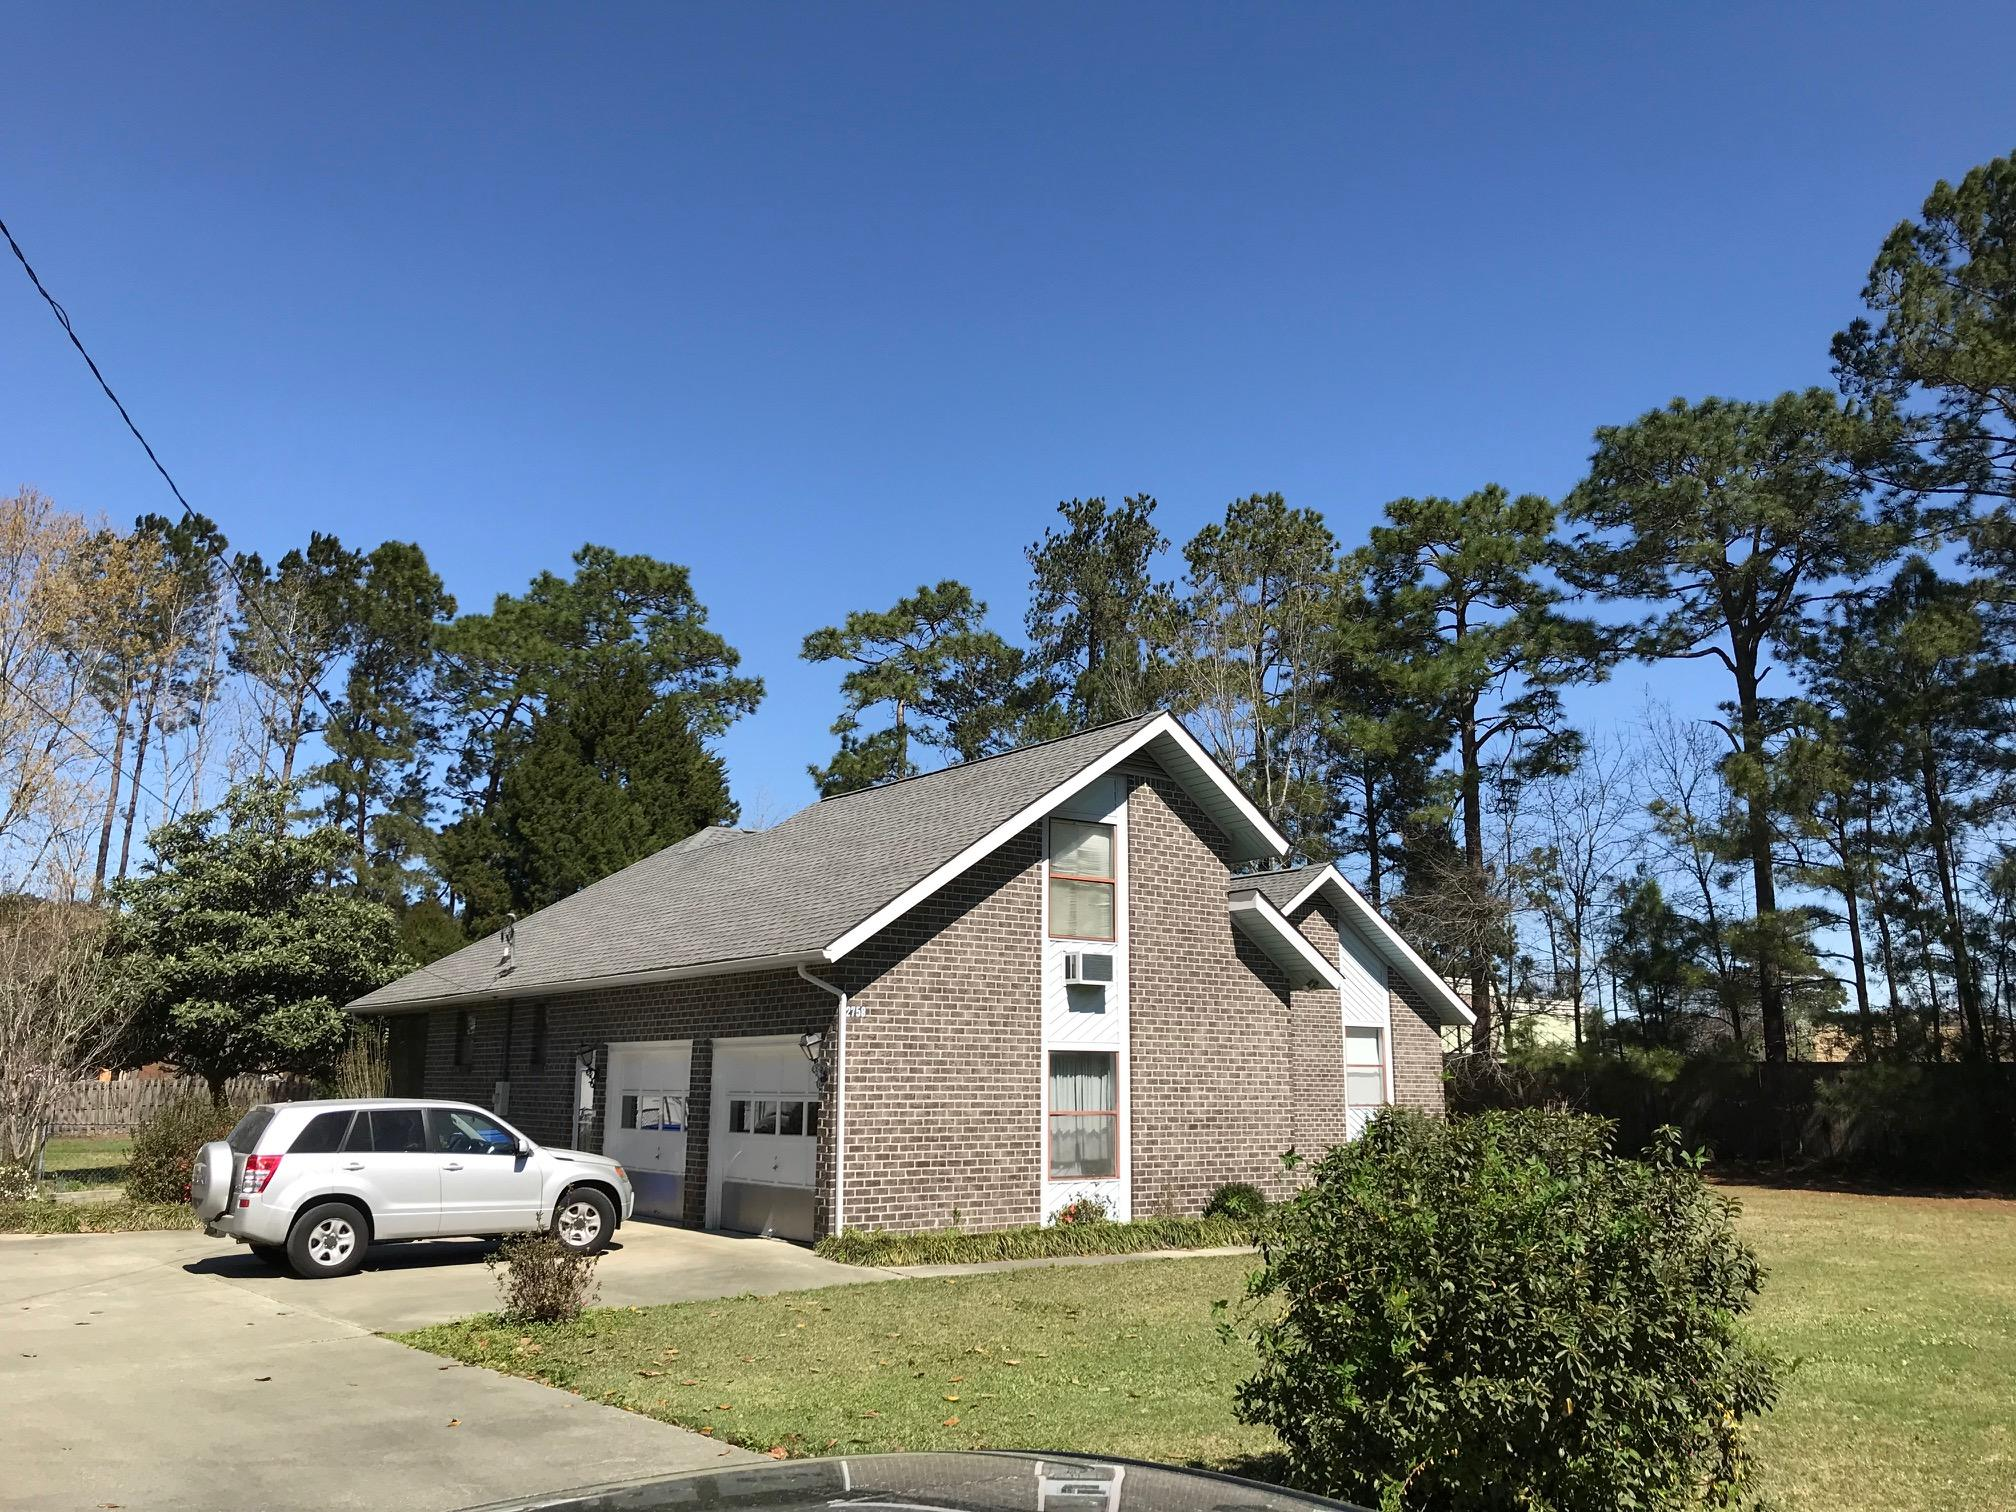 Photo of 2762 State Rd S-10-1427, North Charleston, SC 29406